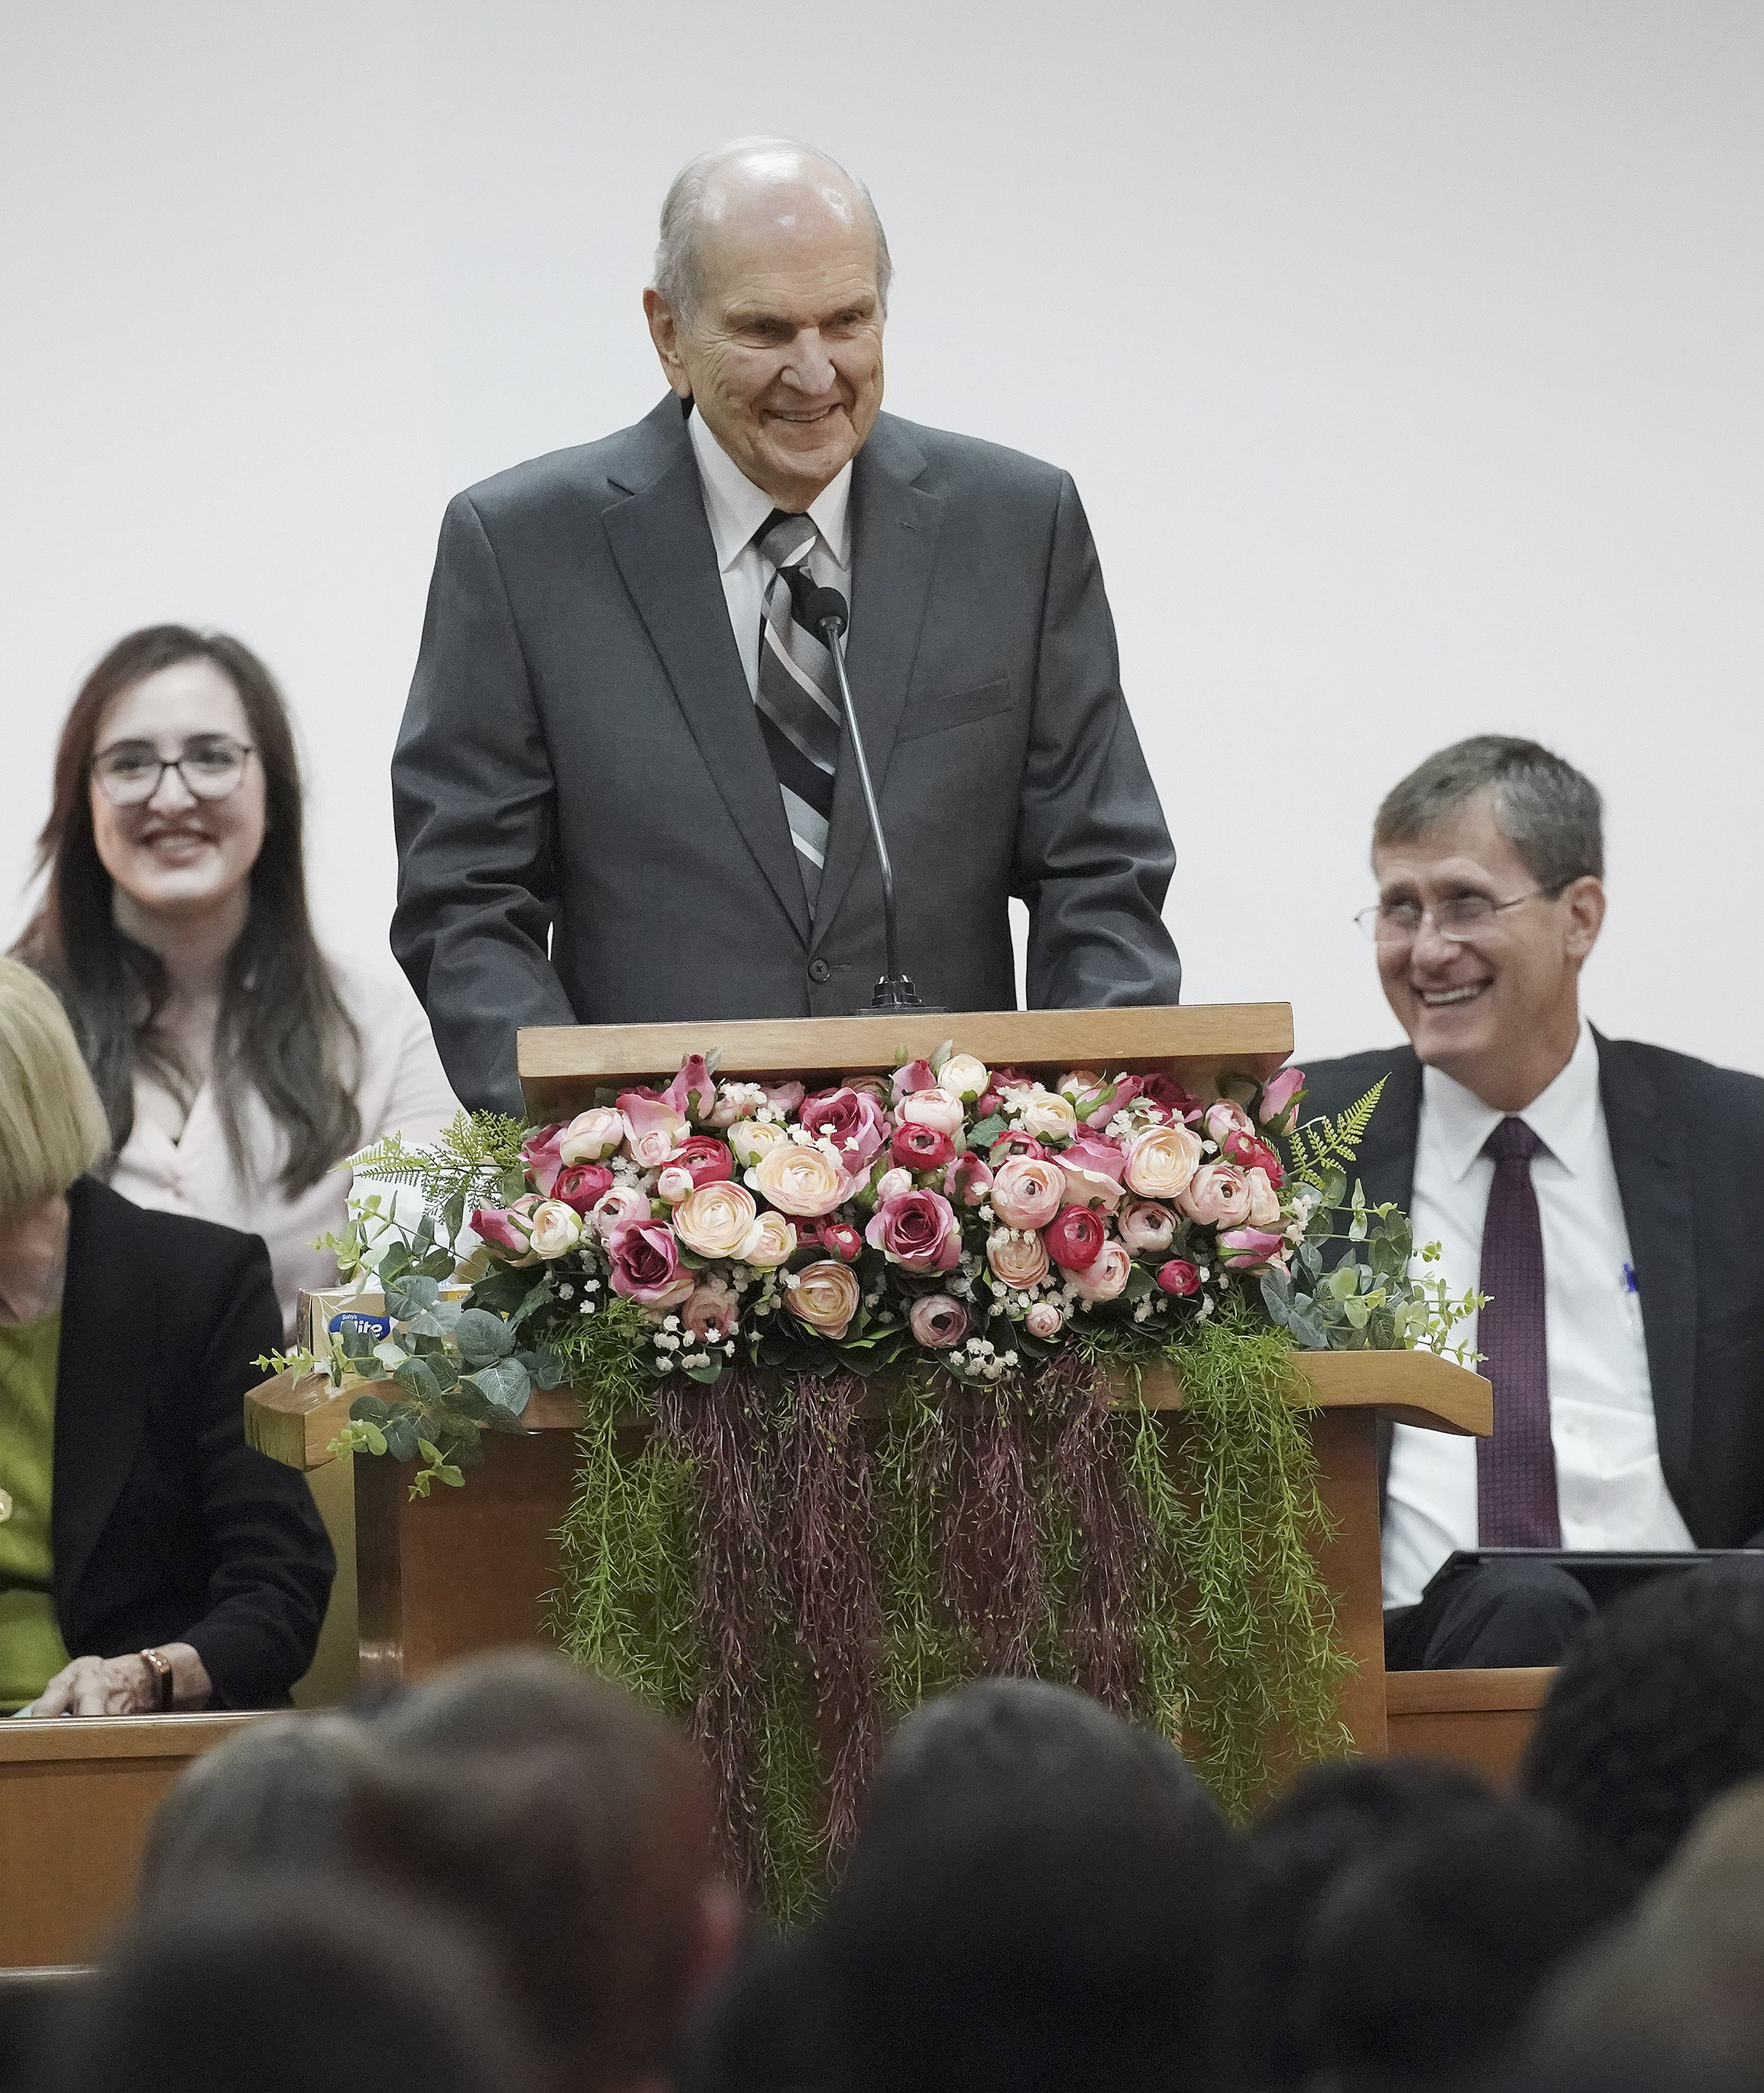 President Russell M. Nelson of The Church of Jesus Christ of Latter-day Saints speaks during a Brazil Brasilia Mission meeting in Brasilia, Brazil, on Friday, Aug. 30, 2019.